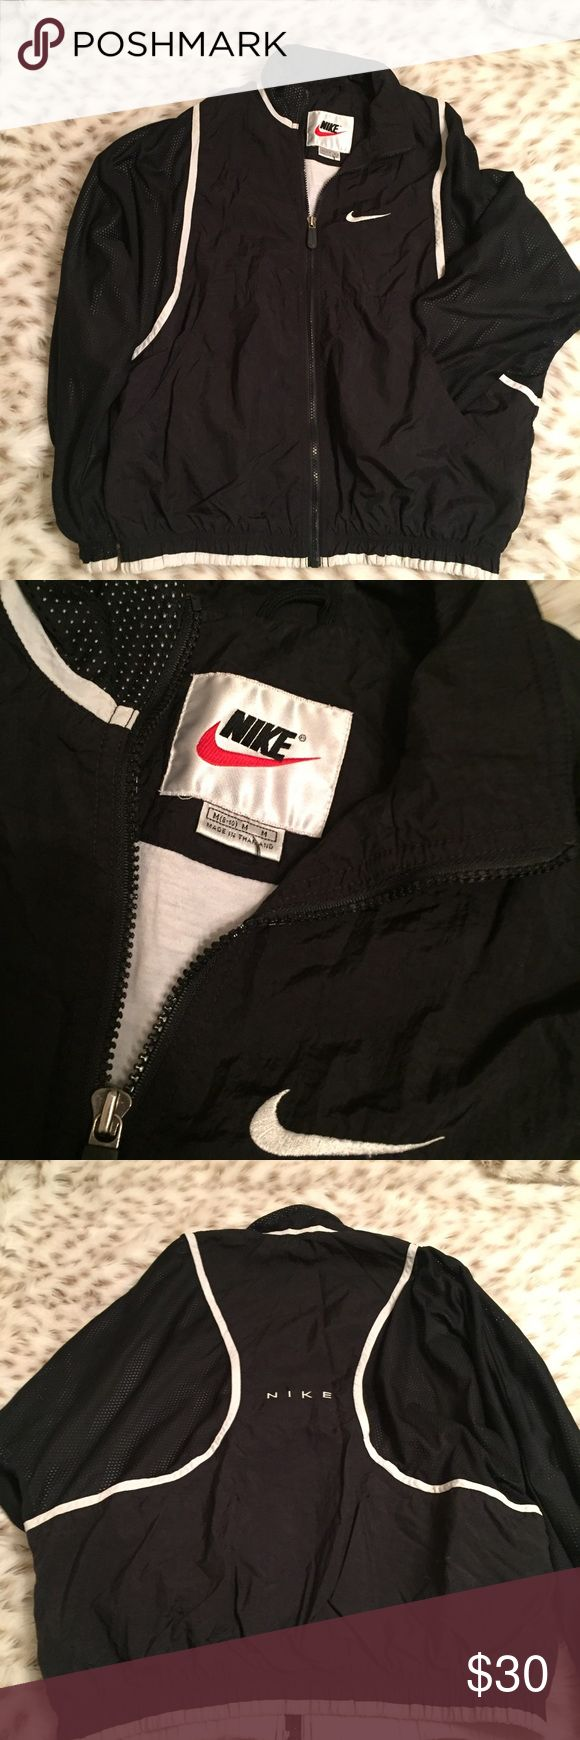 Vintage Nike Black and White Windbreaker Vintage Nike black and white Windbreaker! Size medium! Comfy and warm! Used but in great condition! Nike Jackets & Coats